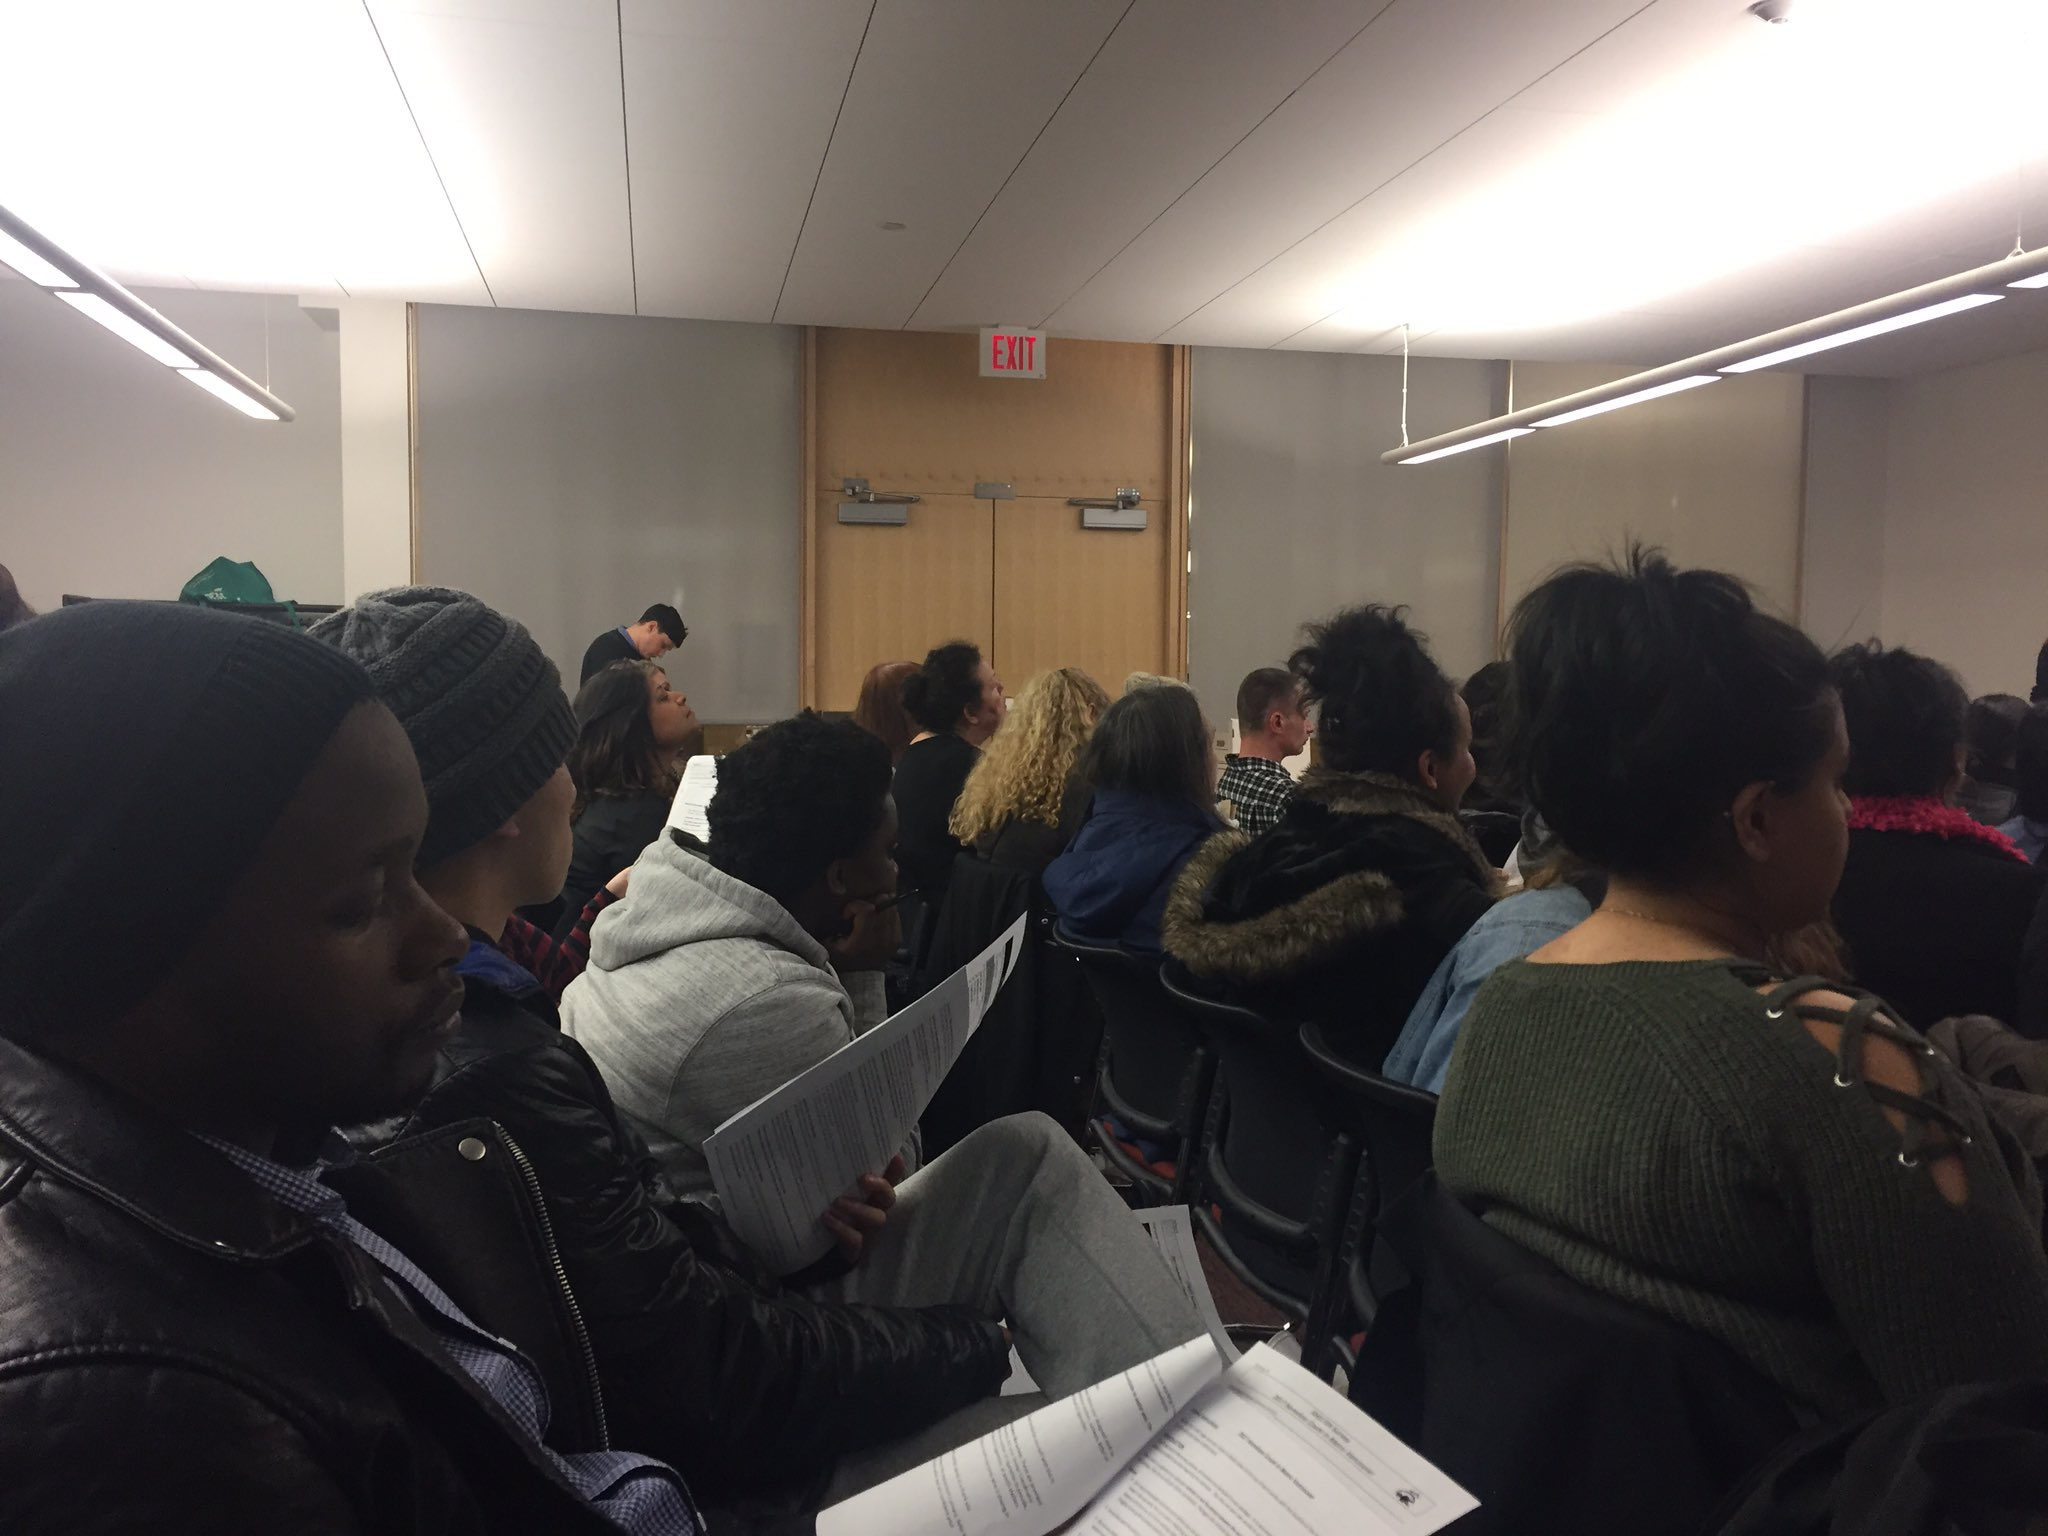 so proud of my @SFU_FHS community & health service students participating in training tonight for @CityofSurrey #homelesscount @sfusurrey https://t.co/qN28hnTm6f